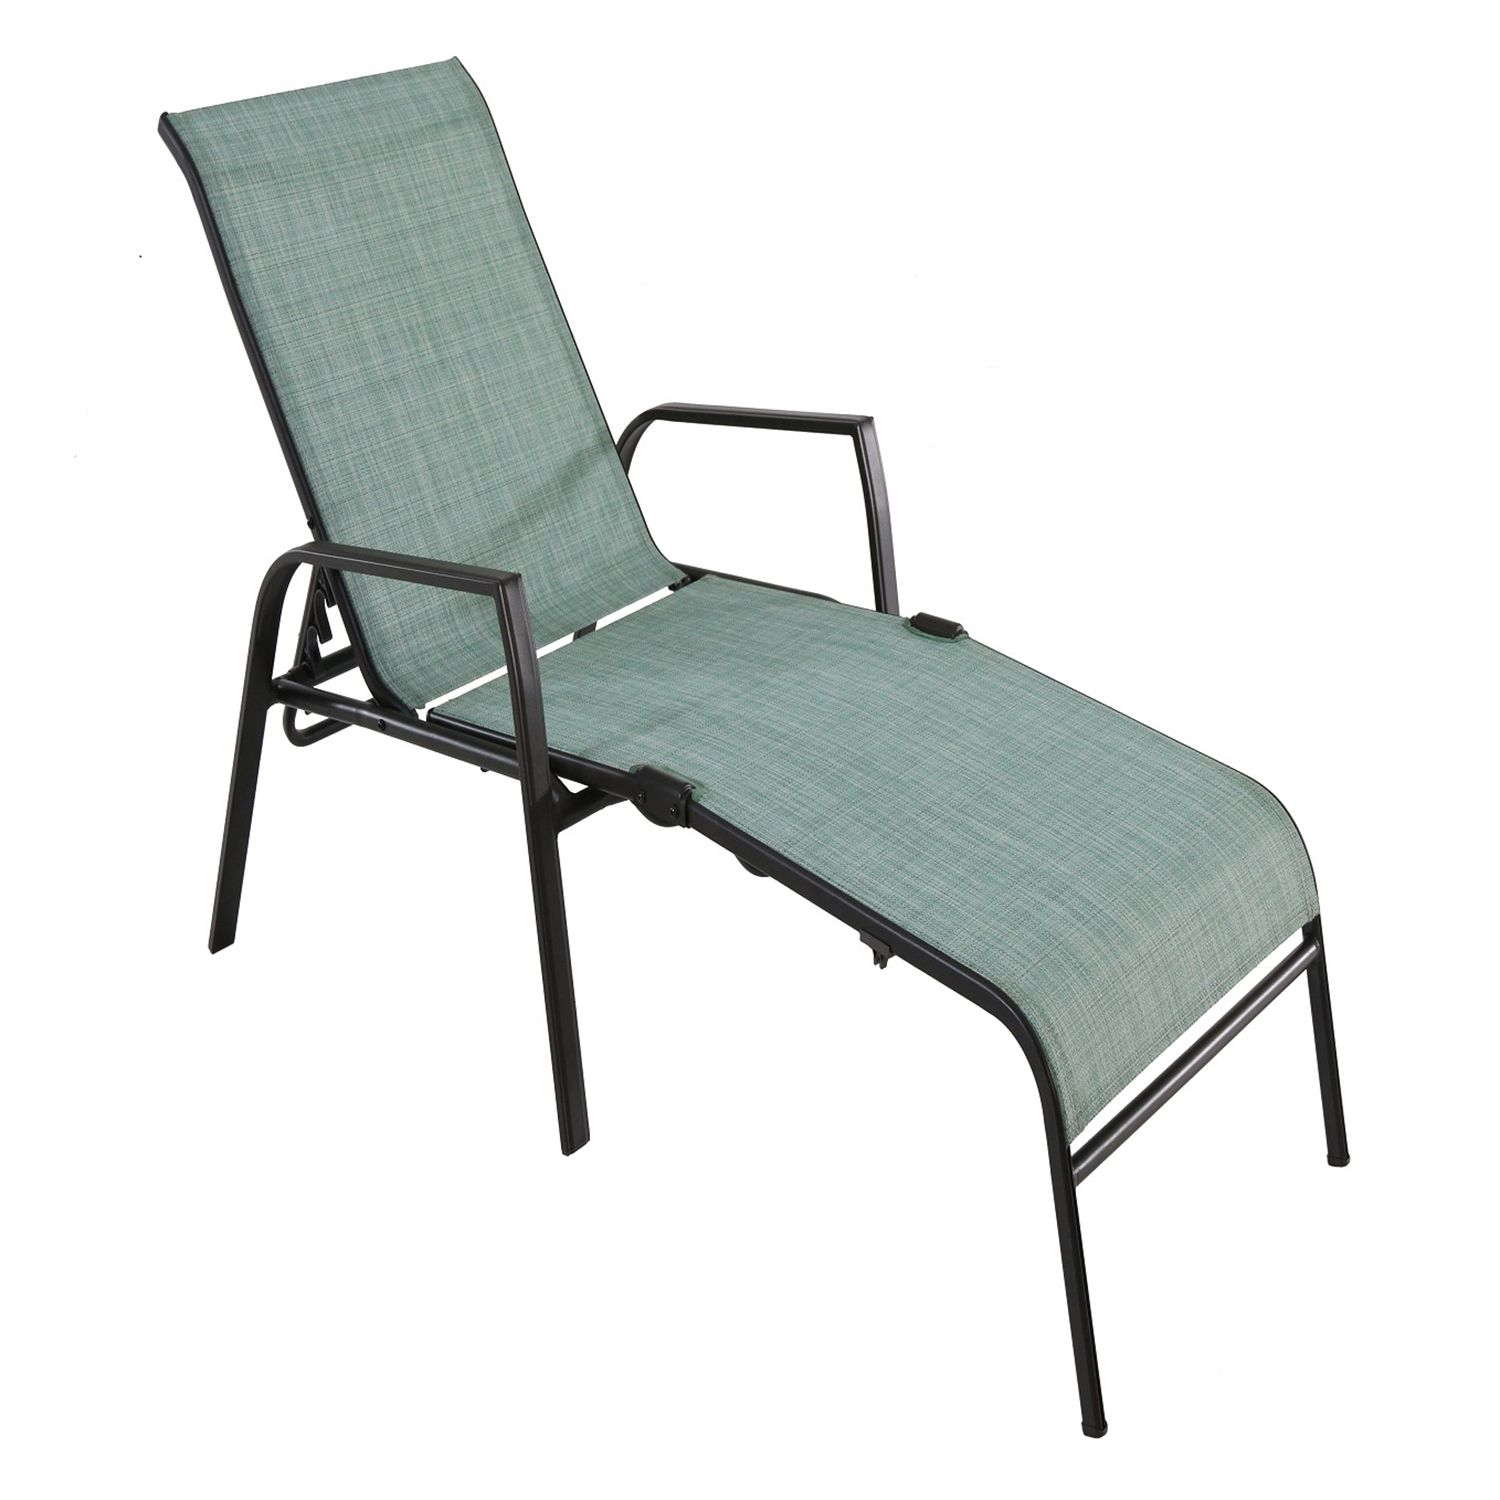 SONOMA Goods for Life™ Coronado Outdoor Folding Chaise Lounge Chair  sc 1 st  Kohlu0027s : chaise lounger chair - Sectionals, Sofas & Couches